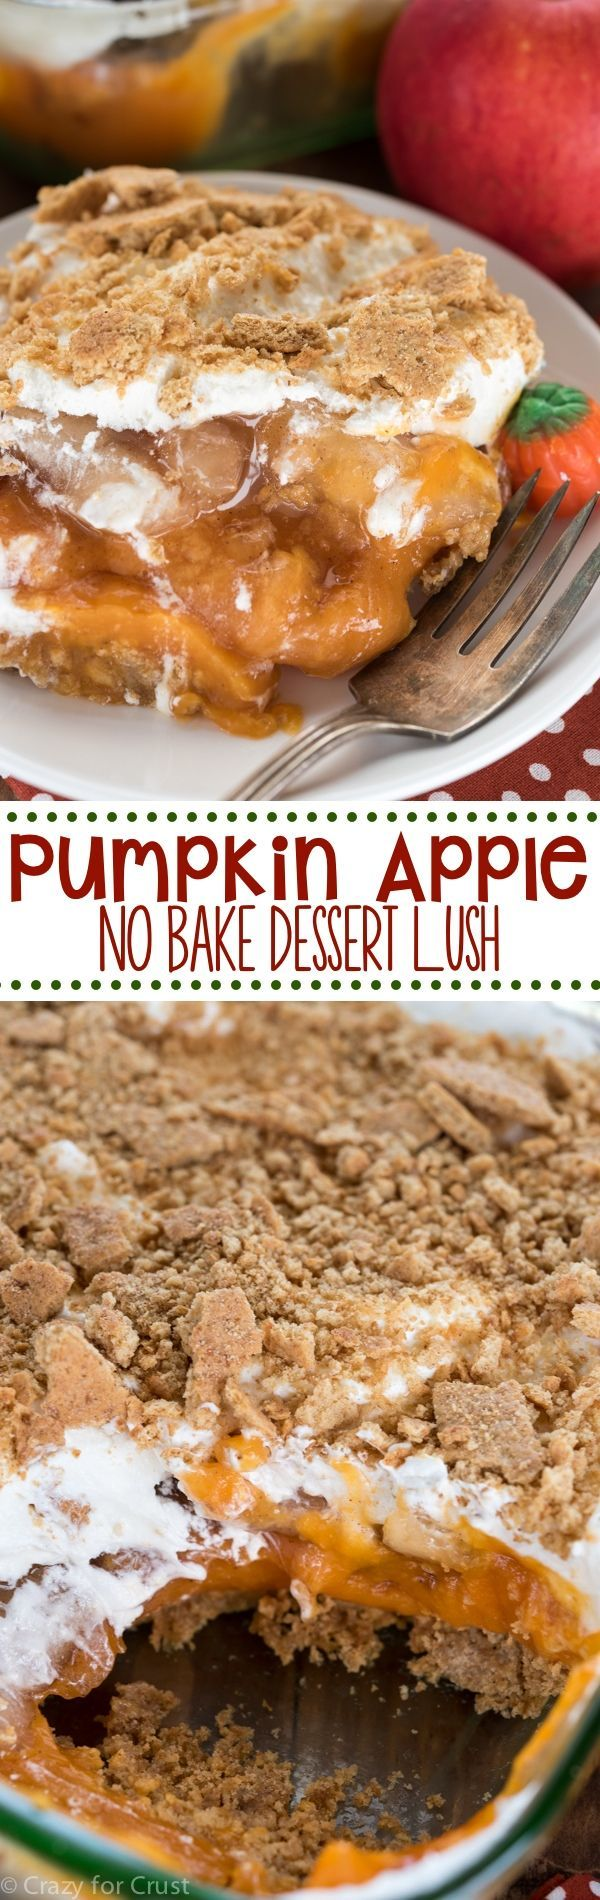 Best new foods that i want to try images on pinterest desserts